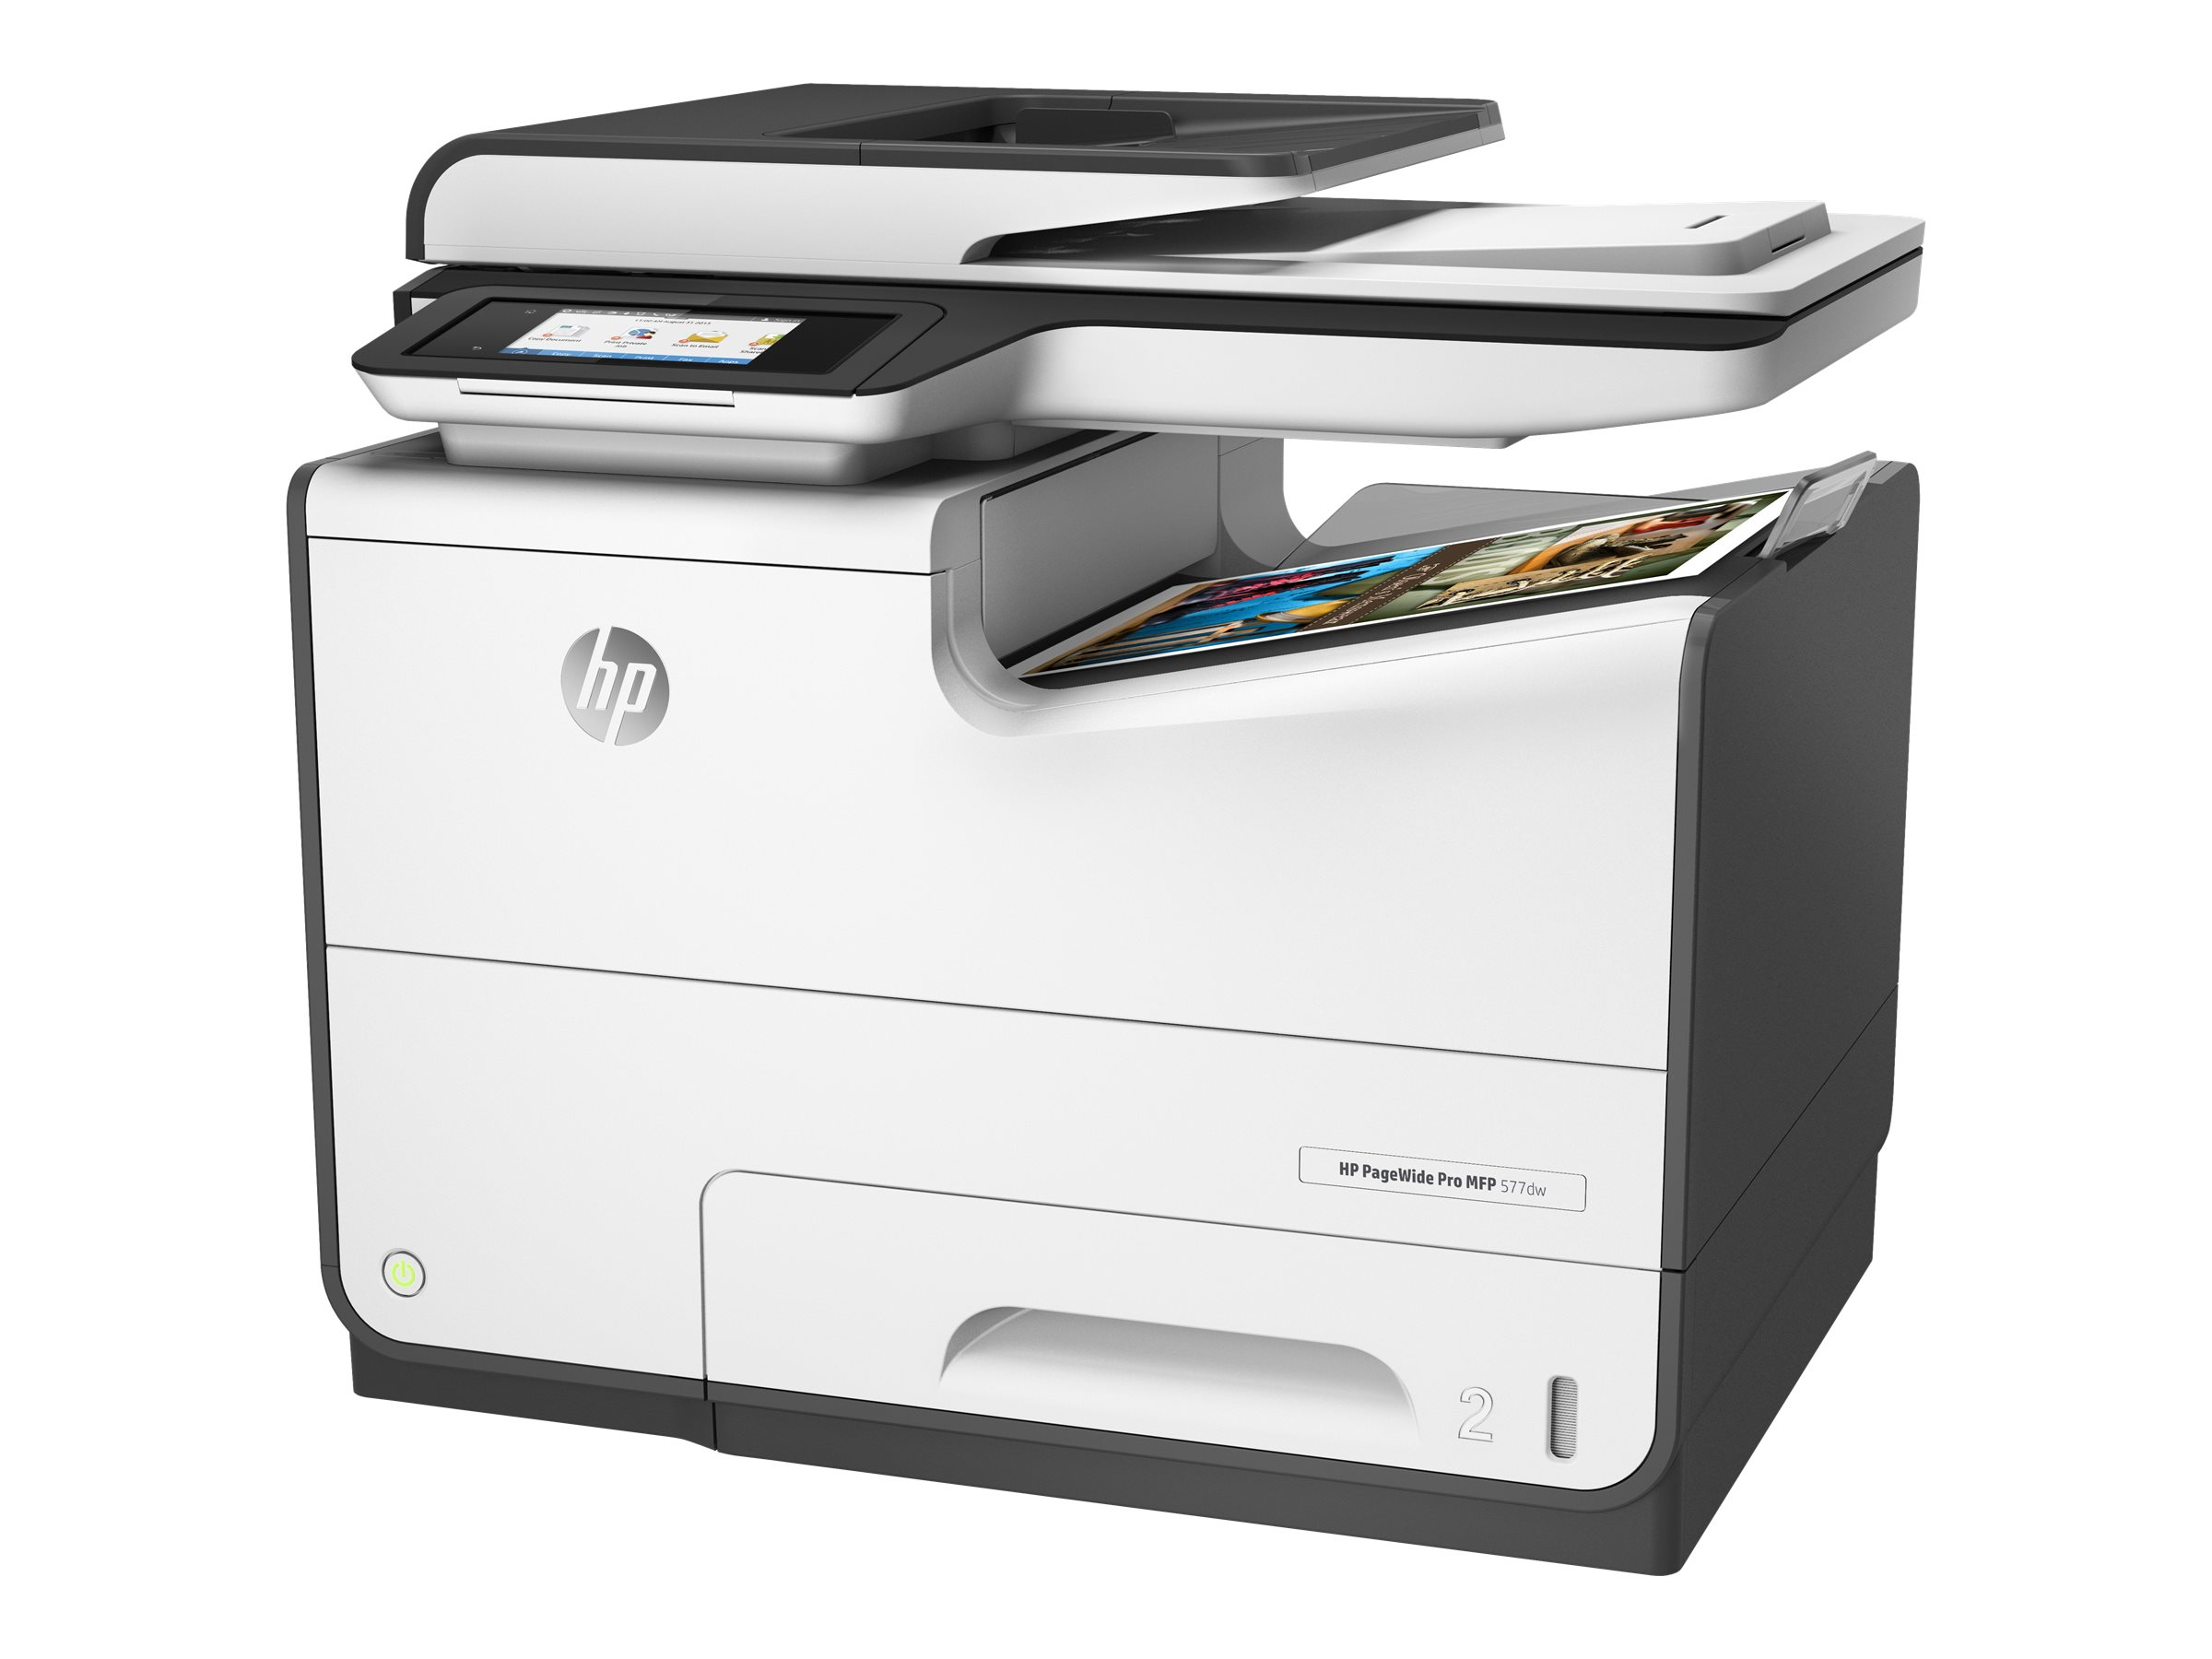 HP PageWide Pro 577dw - multifunction printer - color